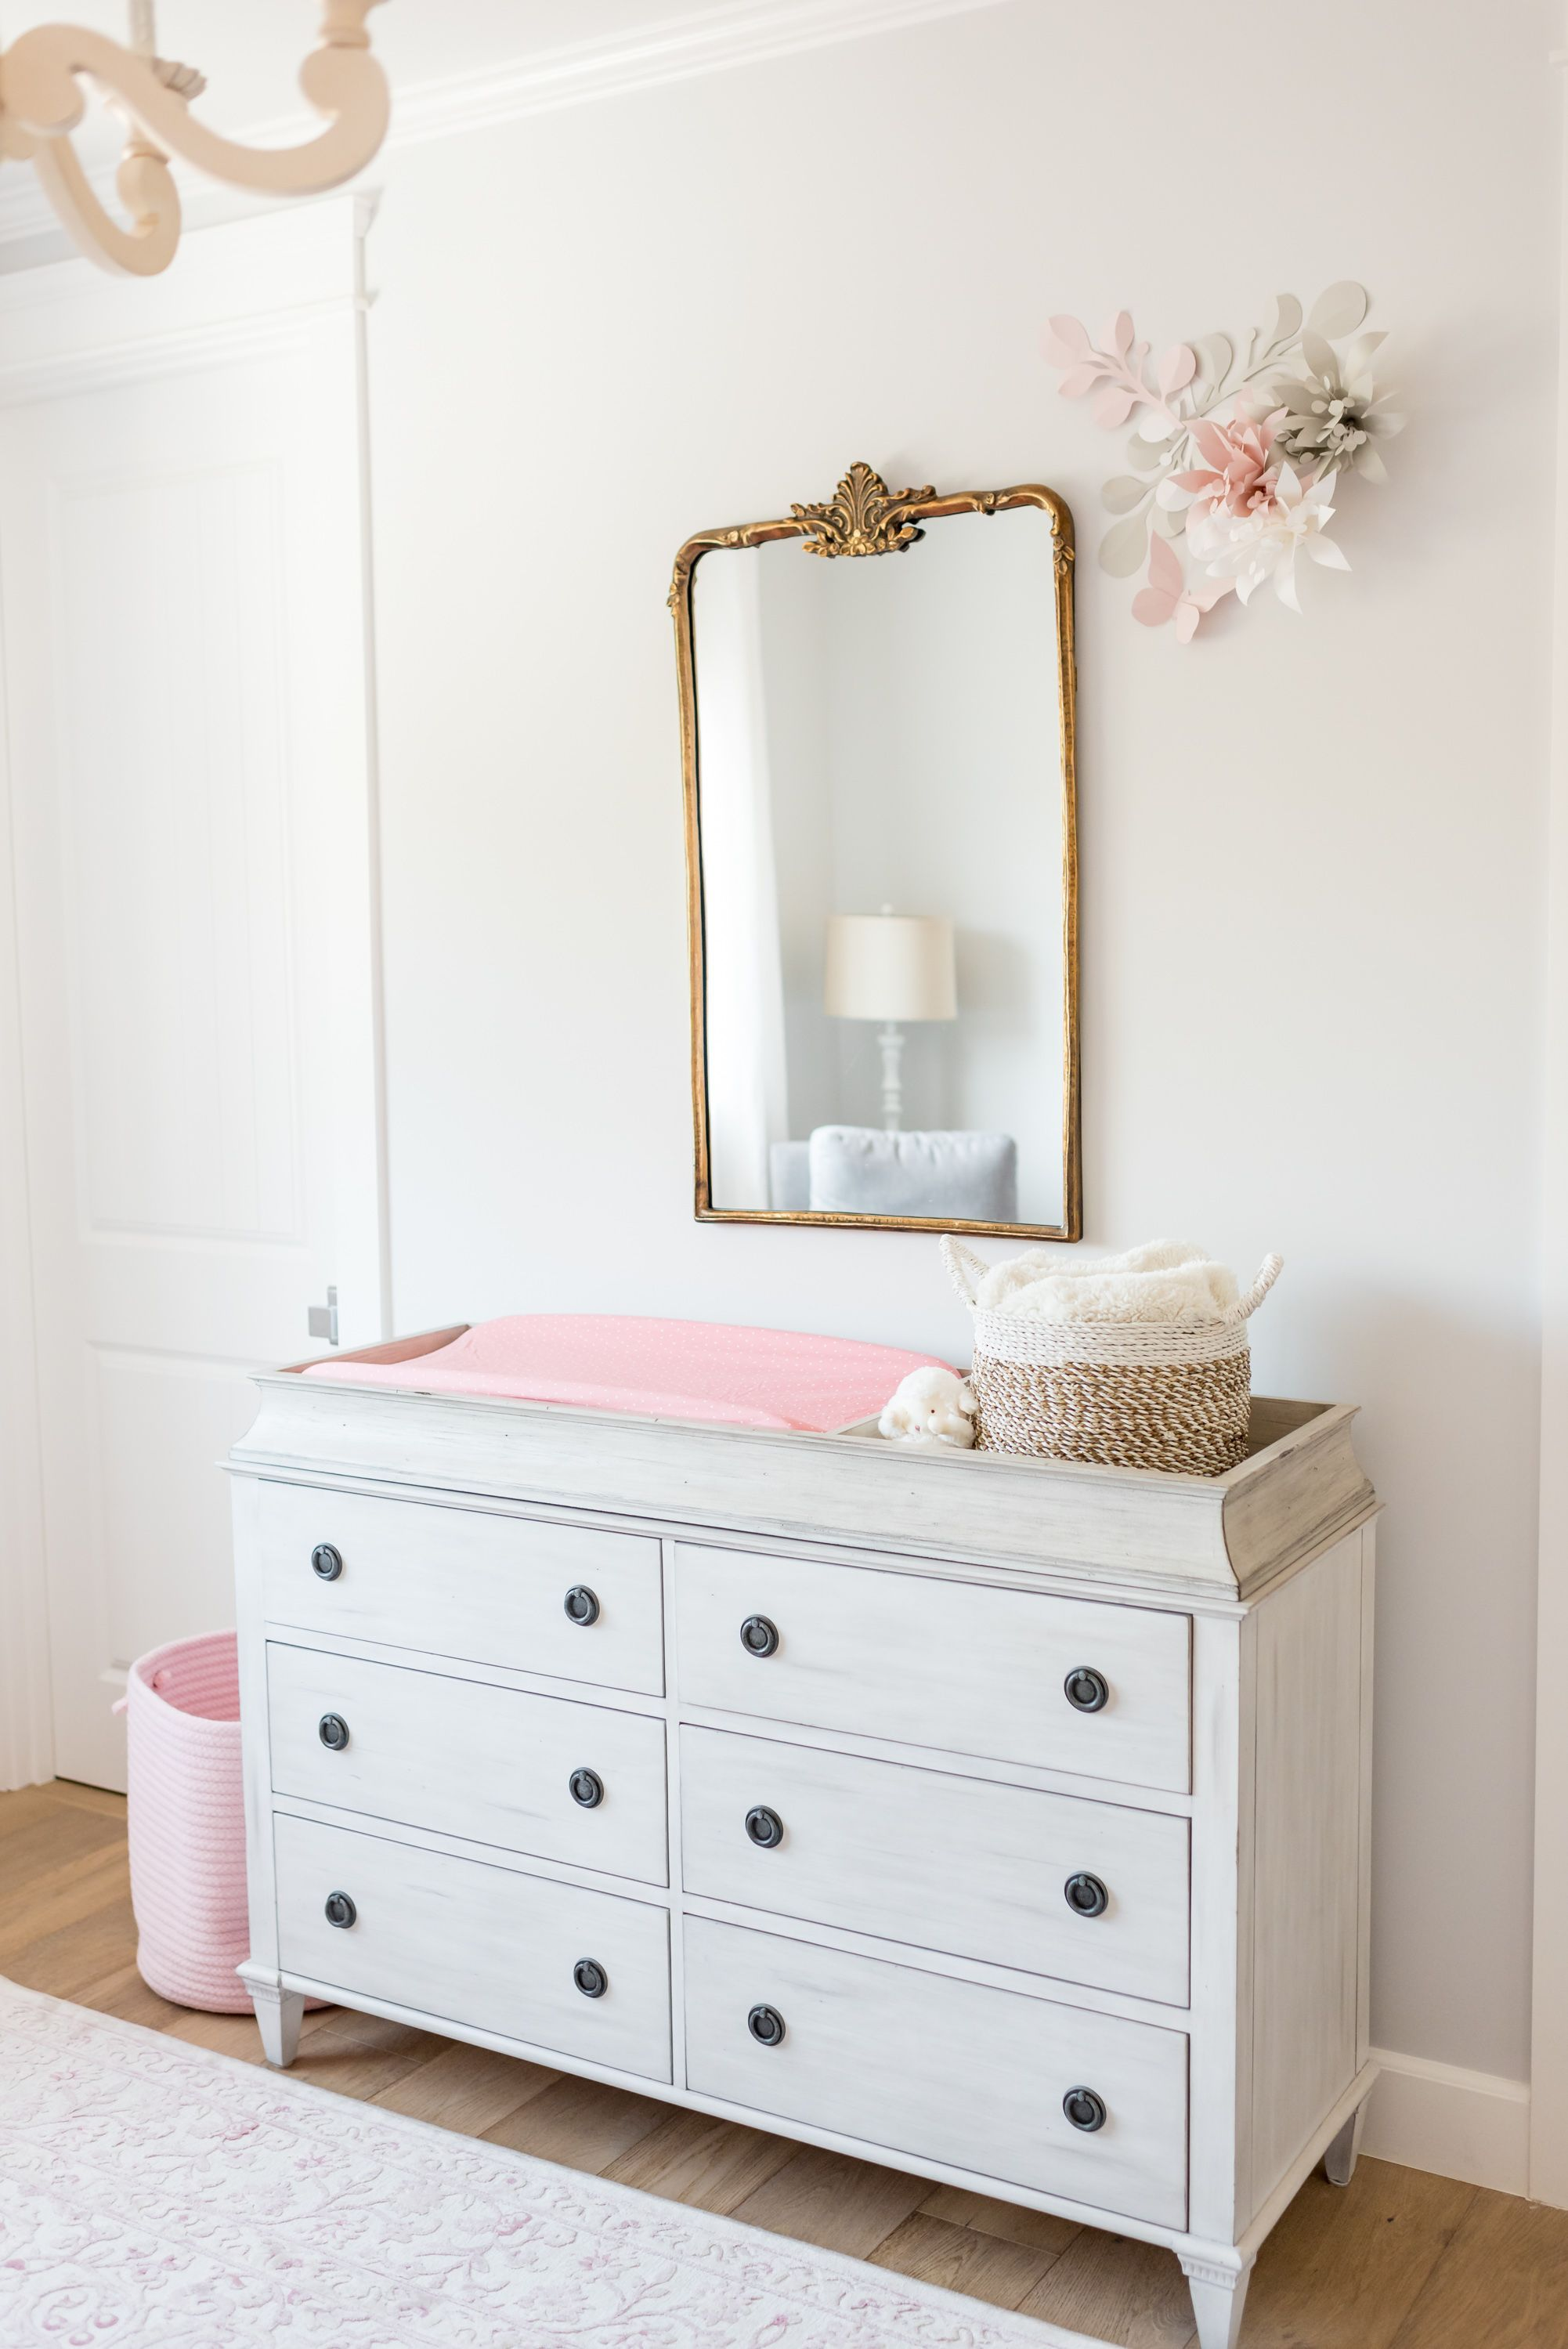 When You Are Looking For A Smarter Changing Table Alternative Try One Of These Some Cleve Changing Table Storage Nursery Changing Table Changing Table Dresser